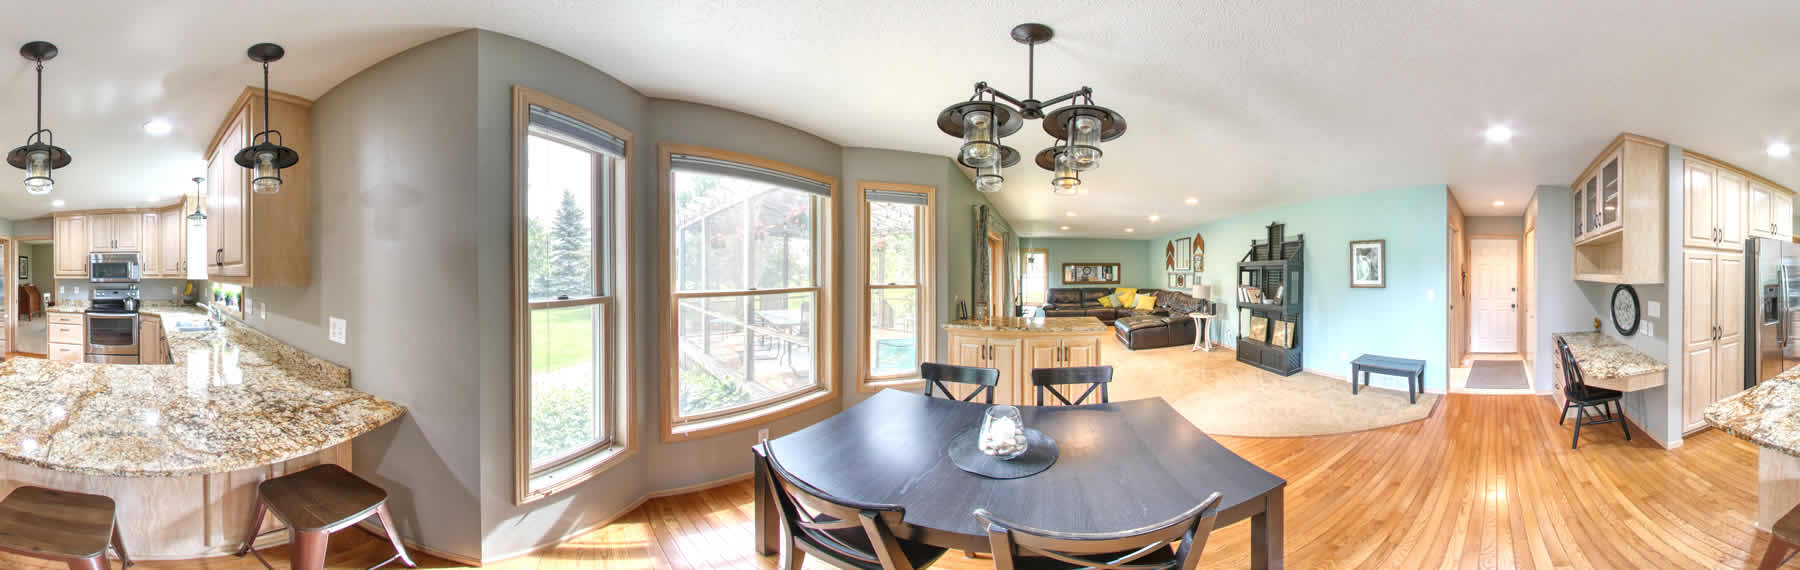 Real Estate Virtual Tours and Photography in Fargo, Moorhead, and Detroit Lakes.